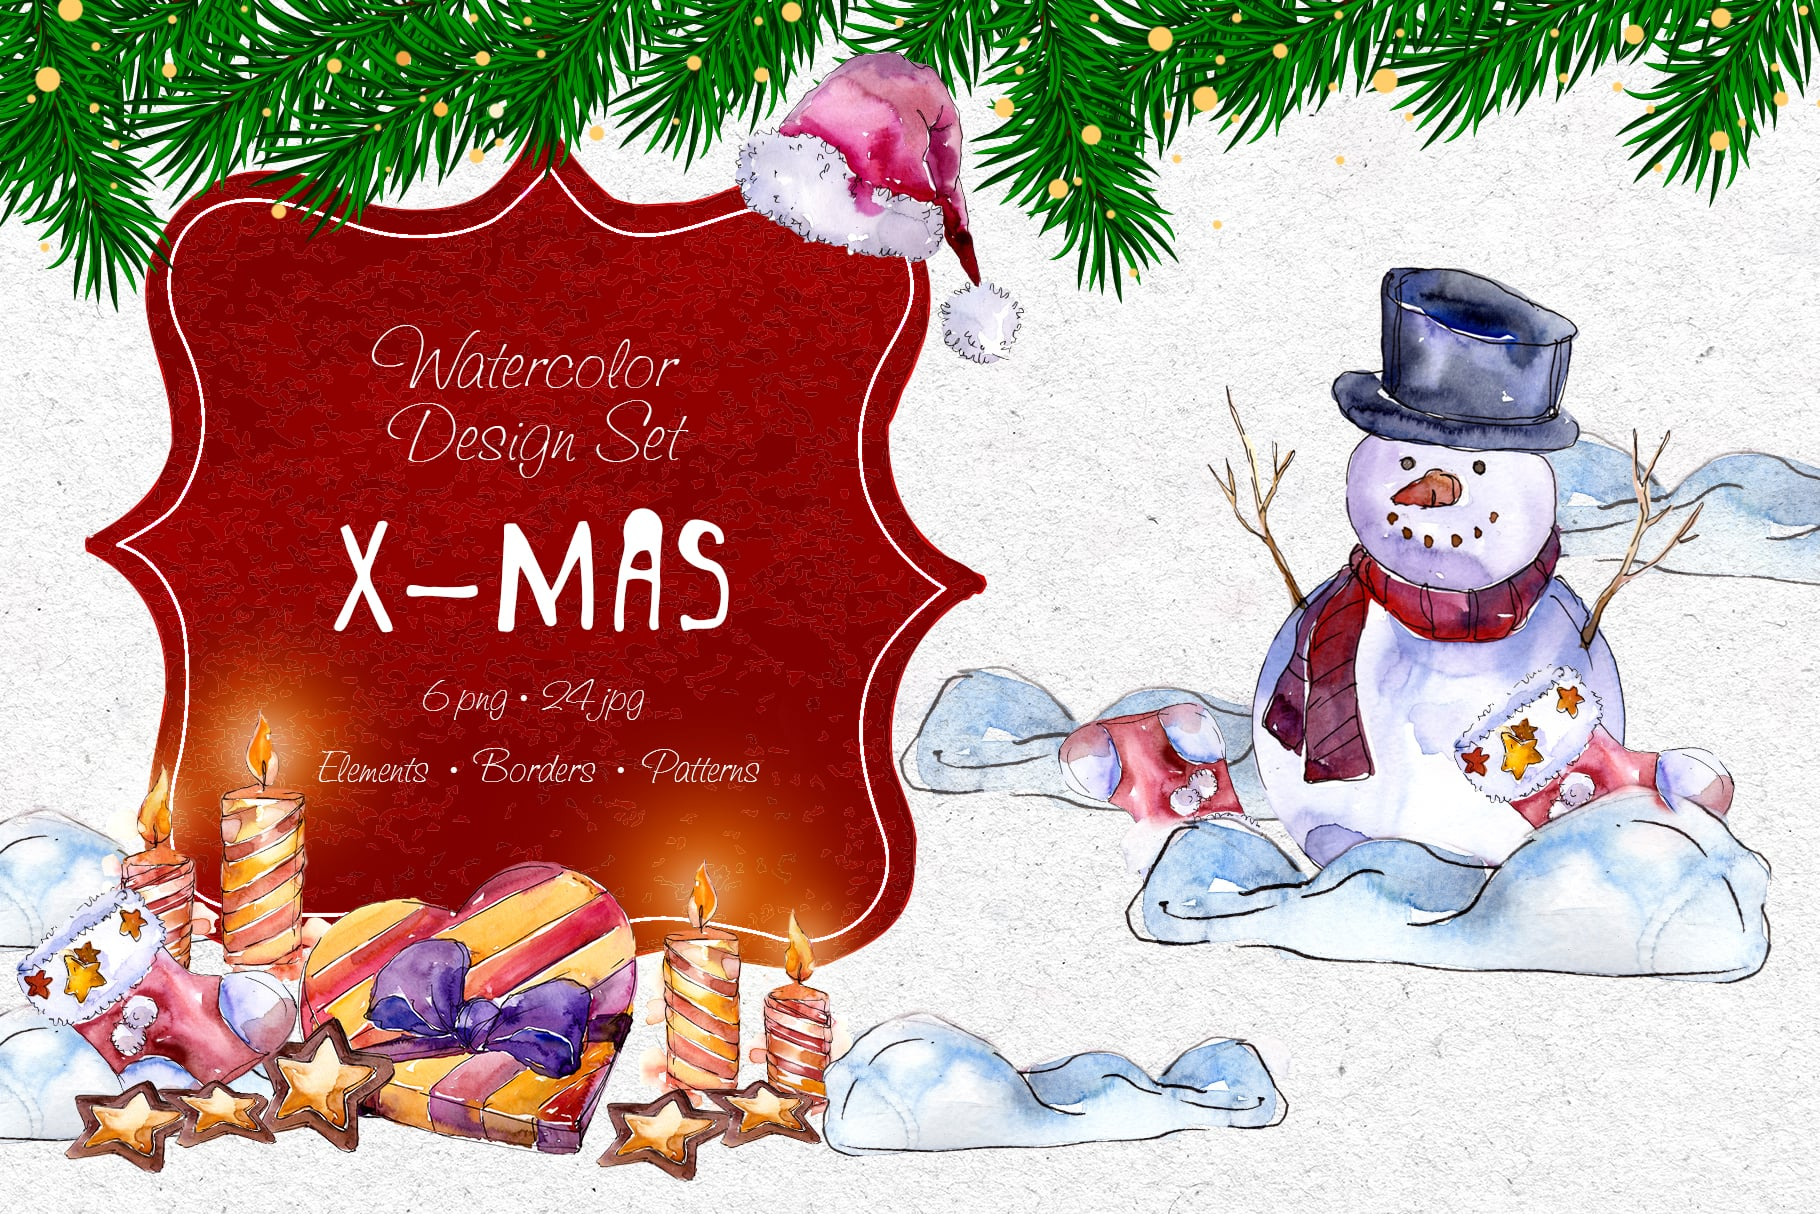 X-Mas PNG watercolor set - $11 ONLY - MYSTOCKS 4300